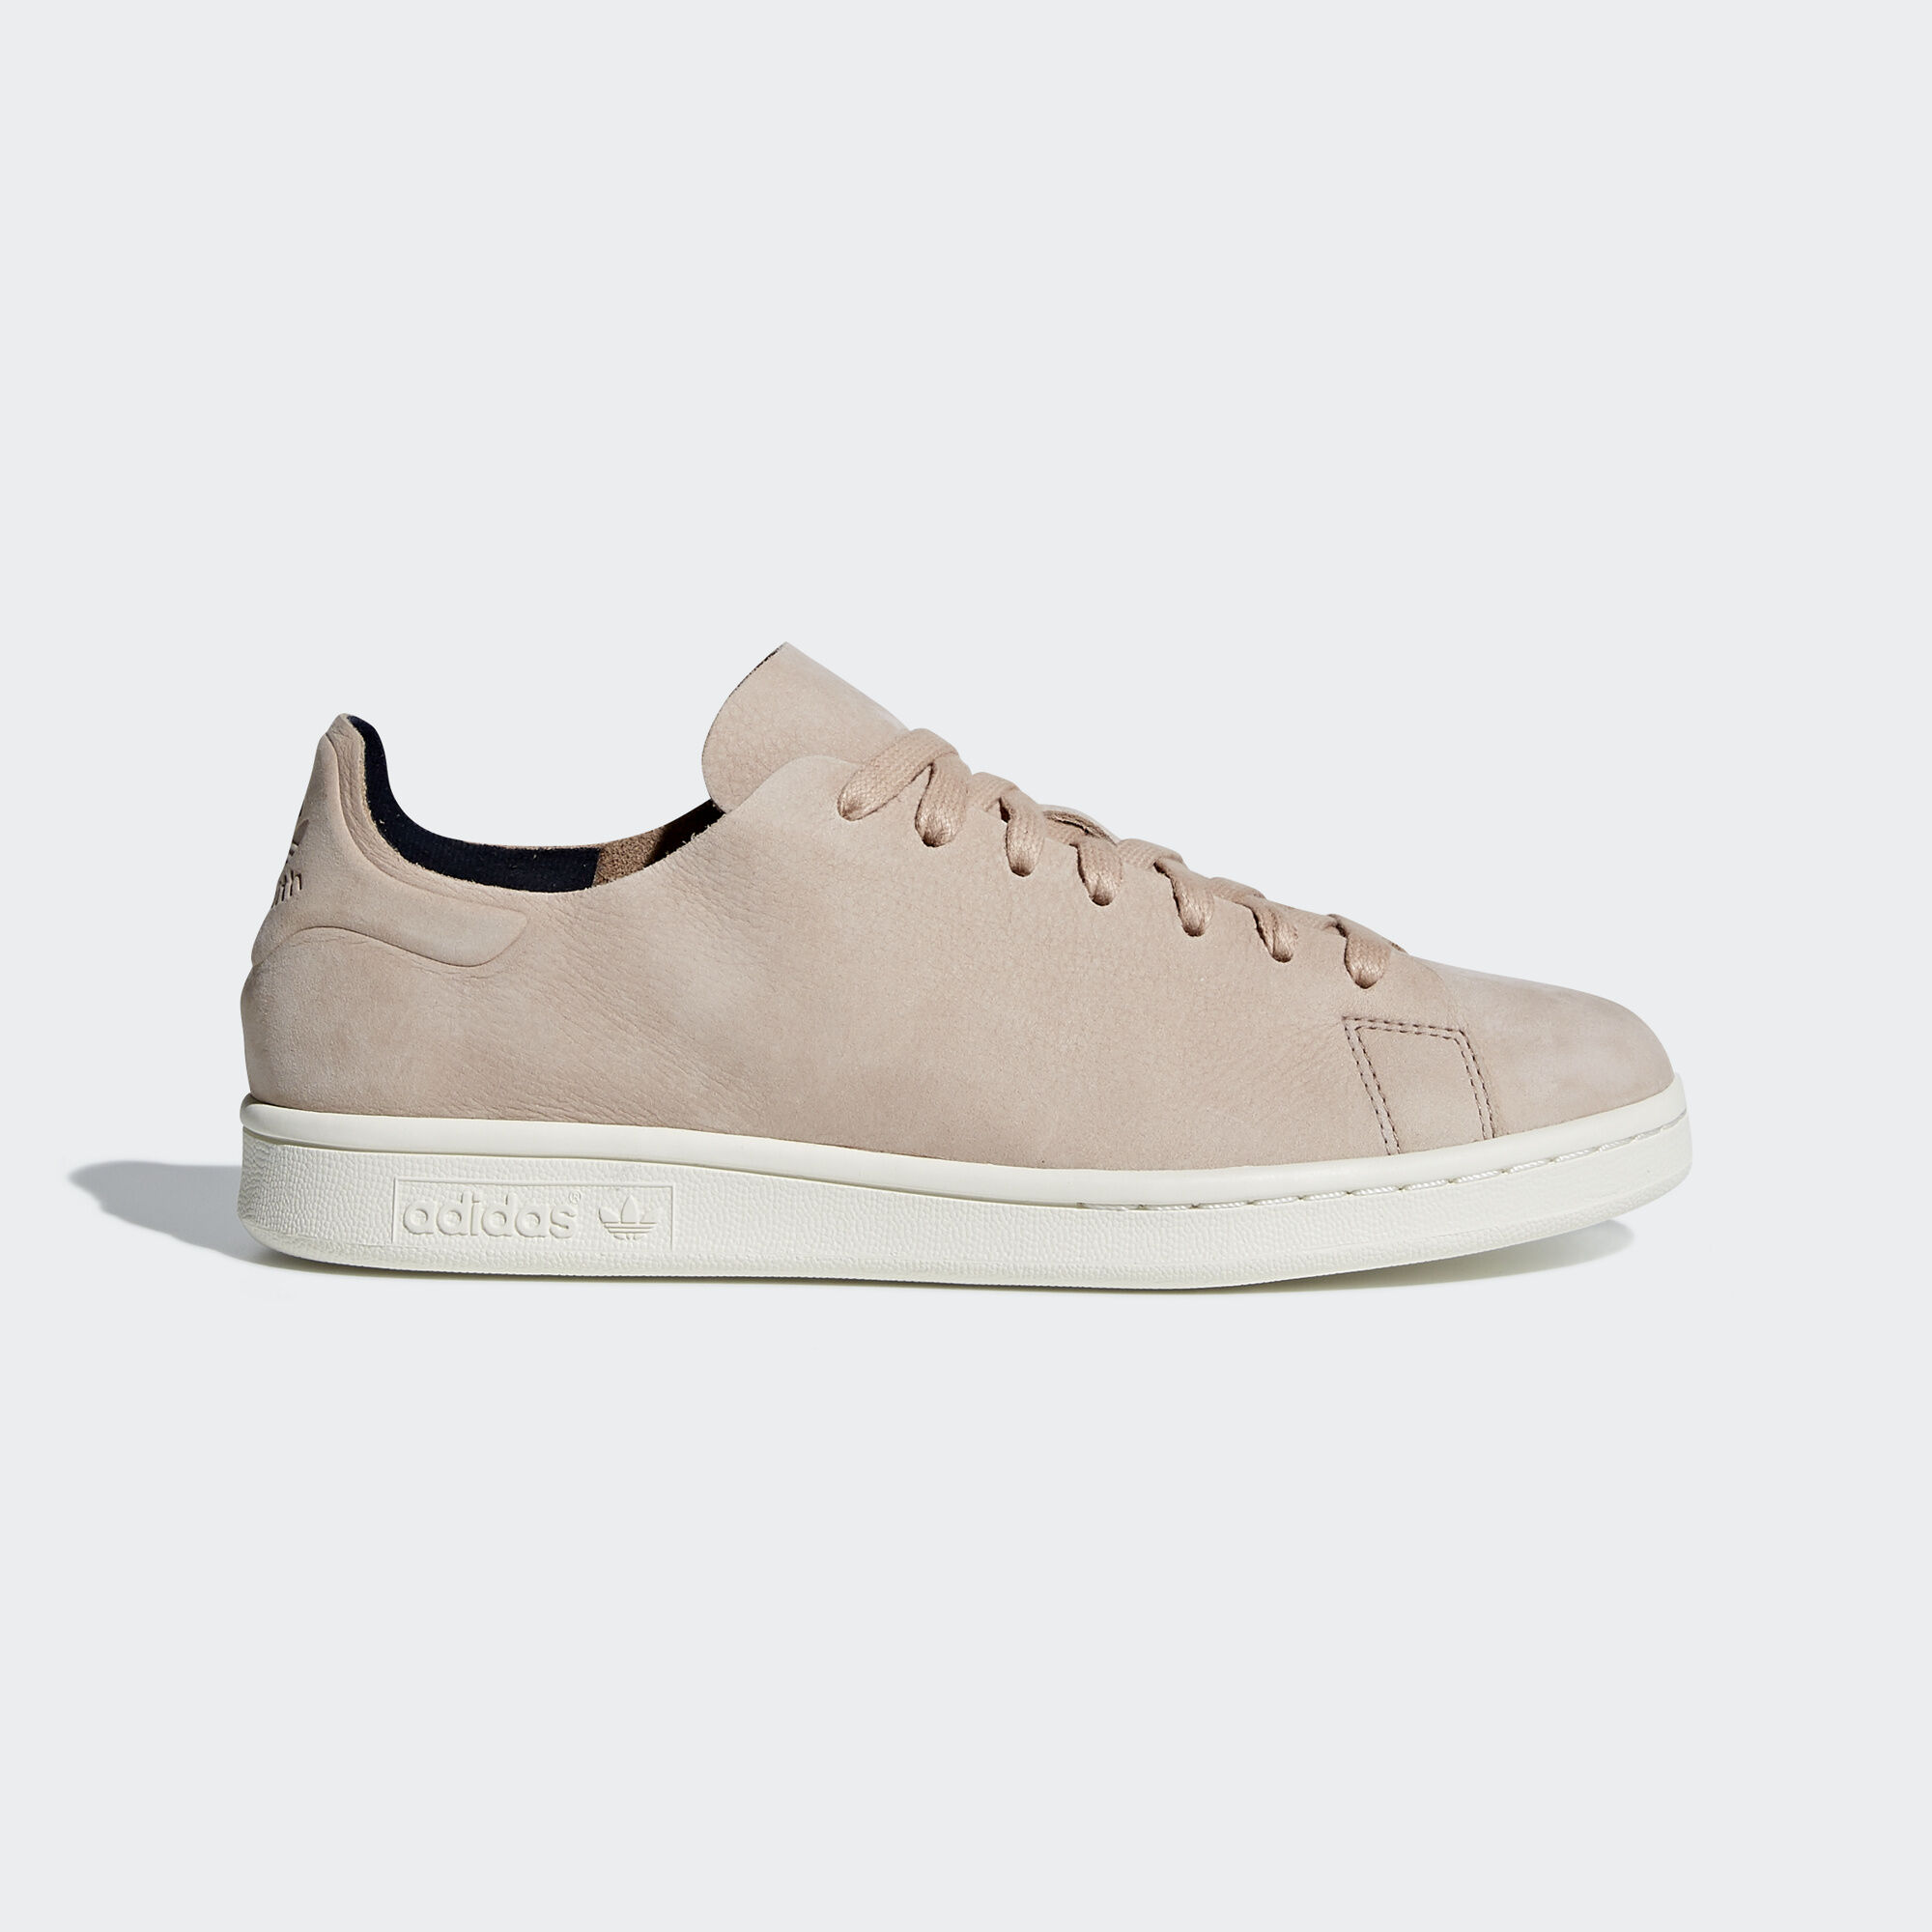 adidas - Stan Smith Nuud Shoes Ash Pearl/Ash Pearl/Legend Ink CQ2898. Women  Originals